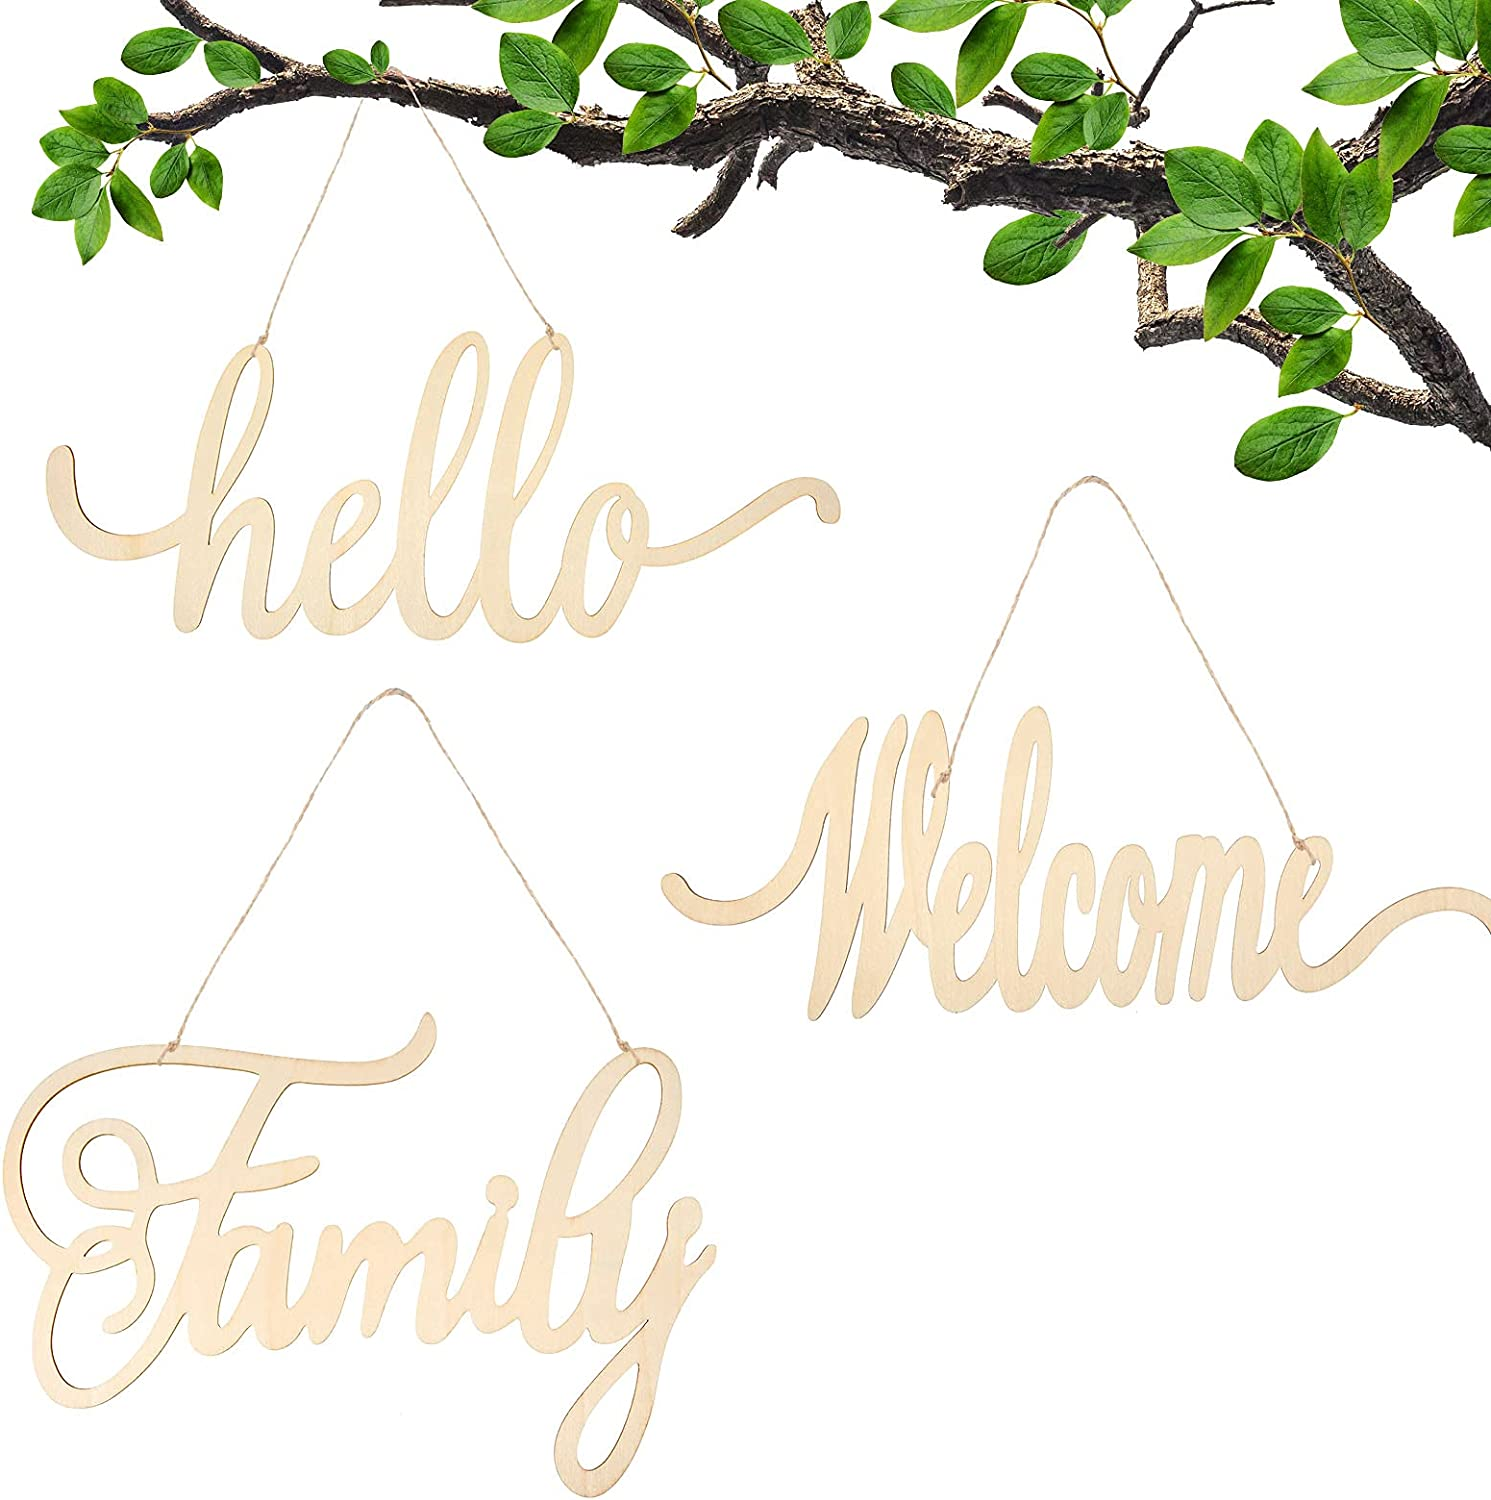 Hello Welcome Family Wood Sign Home Cutout Wooden Letter Decorative Block Word Sign Wooden Wall Decal Door Art Farmhouse Rustic Welcome Home Sign for Wall Home Decoration